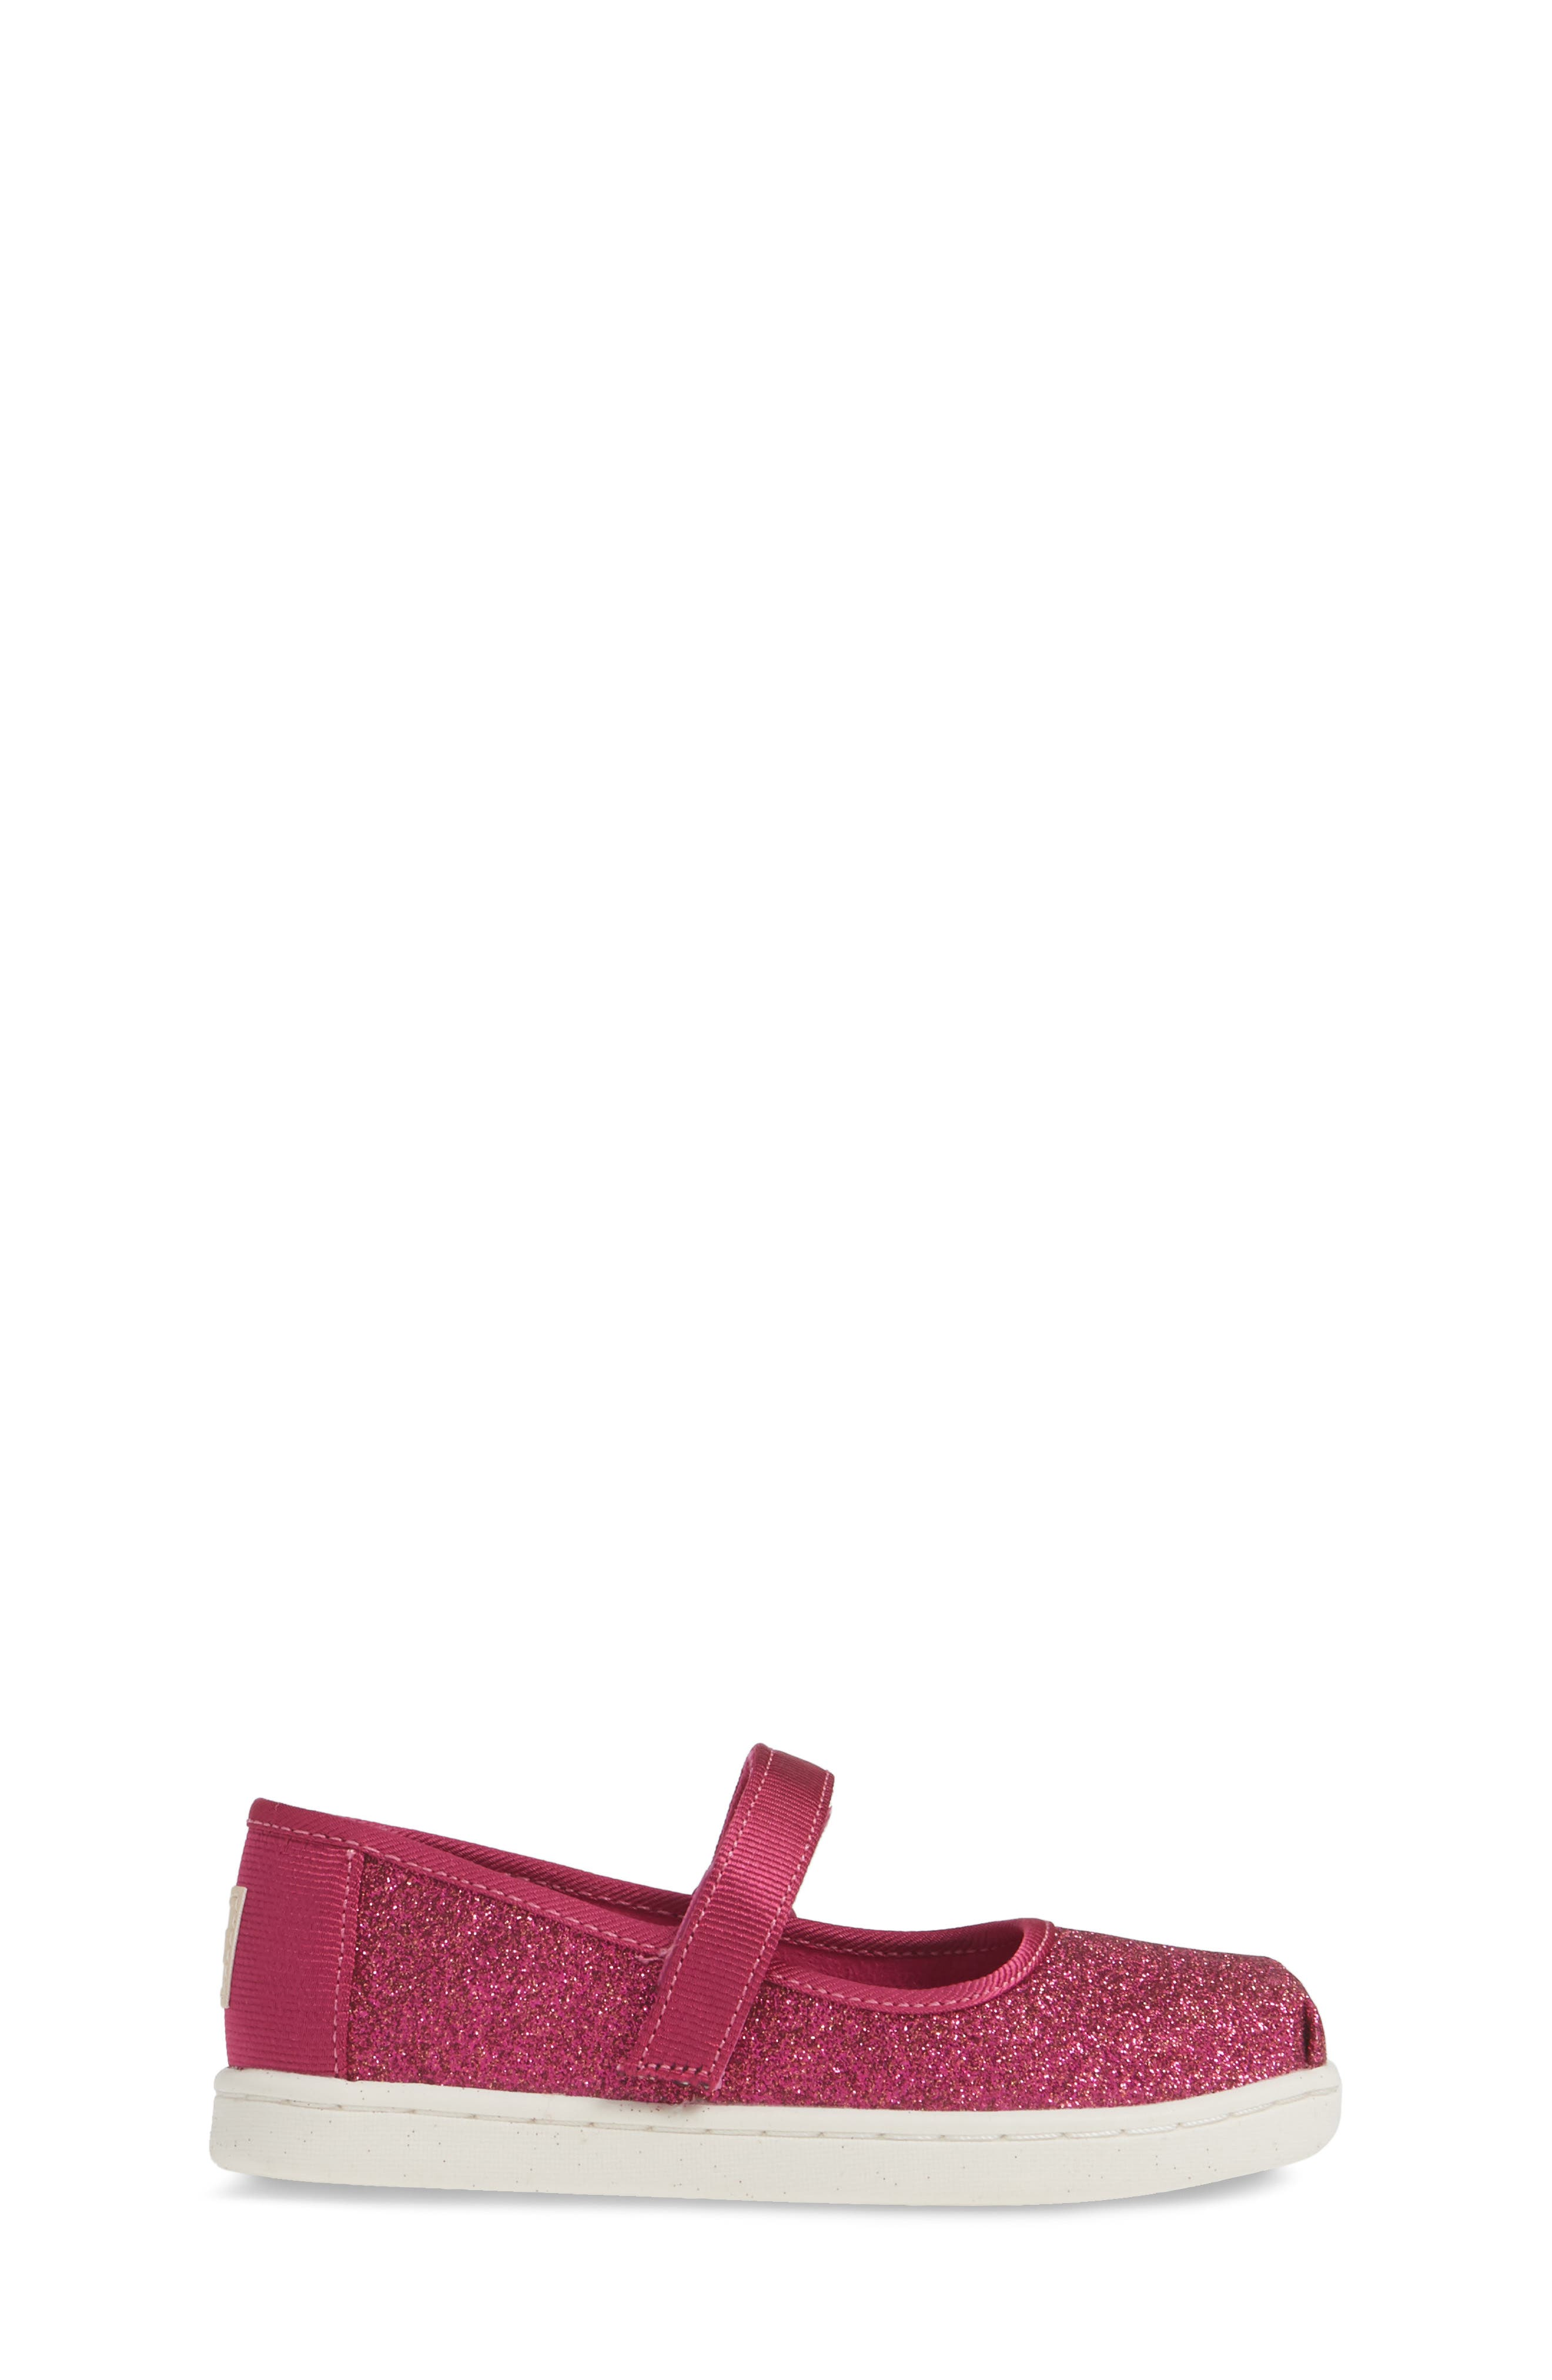 TOMS, Mary Jane Sneaker, Alternate thumbnail 3, color, PINK